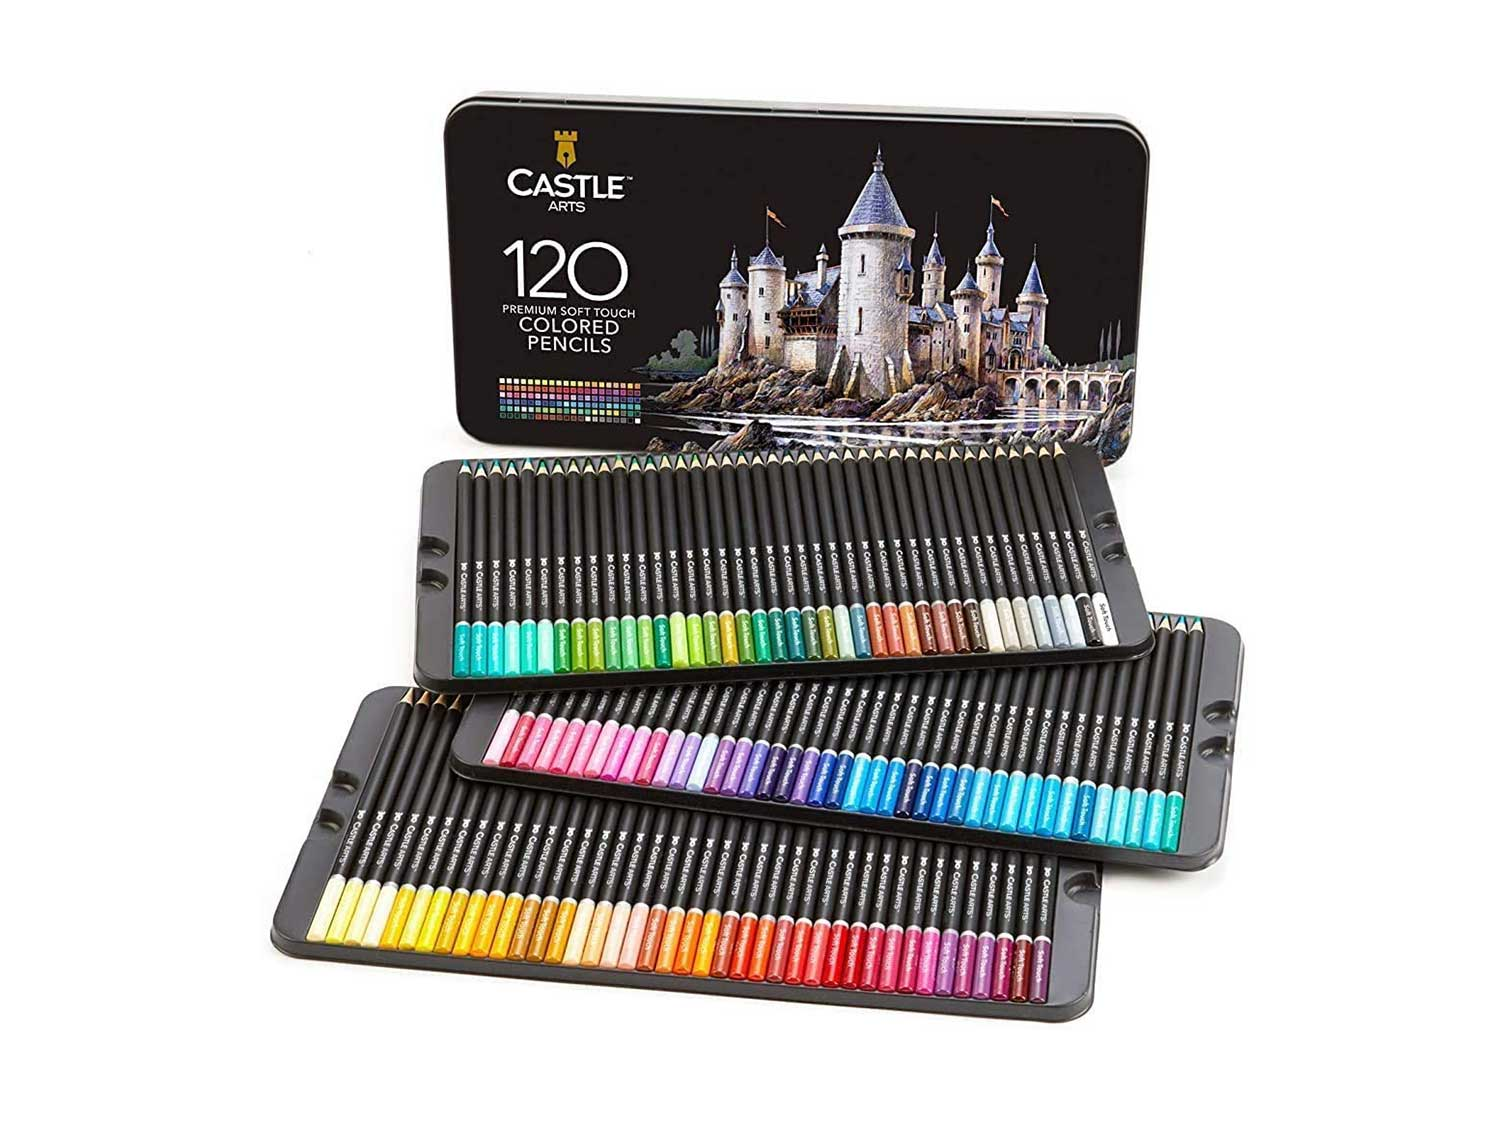 Castle Art Supplies 120 Coloured Pencils Set for Adults Artists Professional   Featuring soft series core for expert layering blending shading drawing   Perfect for colouring books and classroom